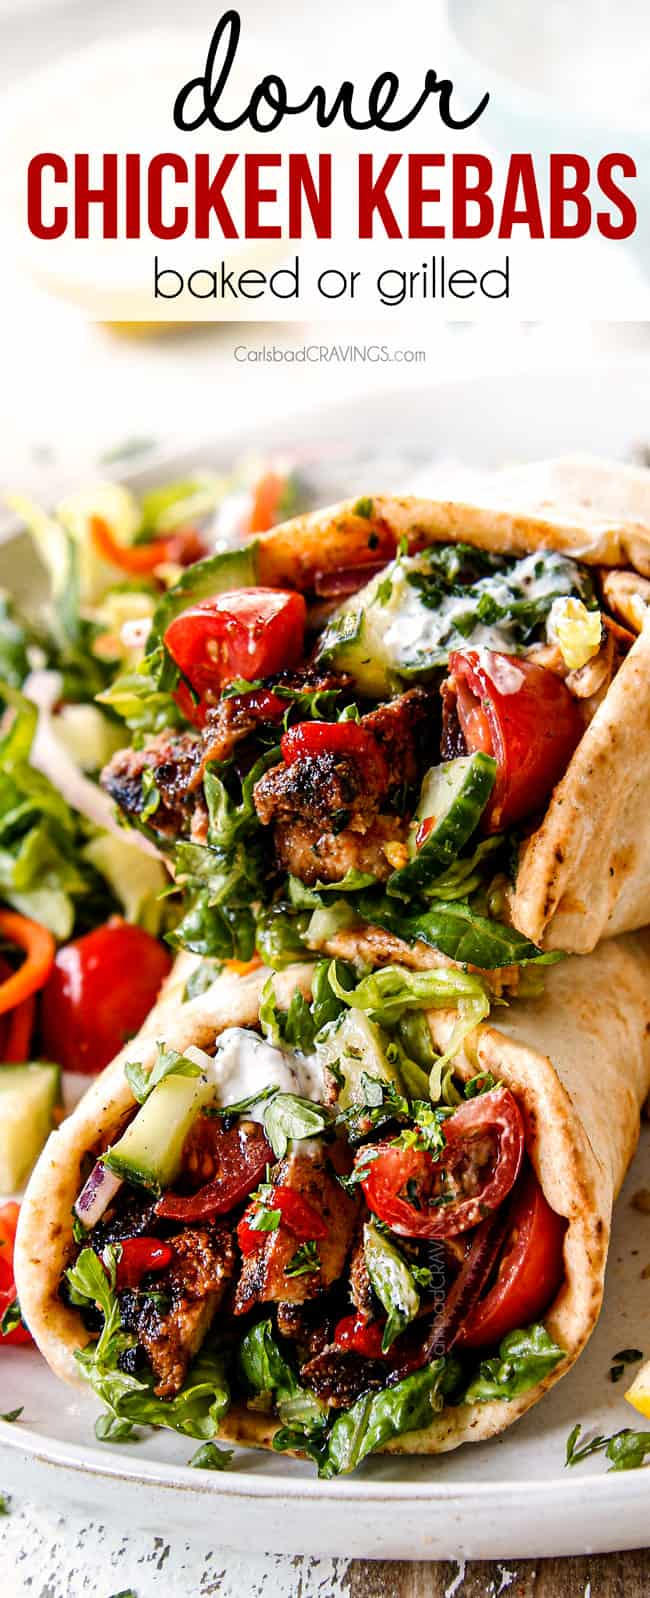 up close of doner kebab with chicken, hummus, tomatoes, red onions, cucumber and yogurt sauce